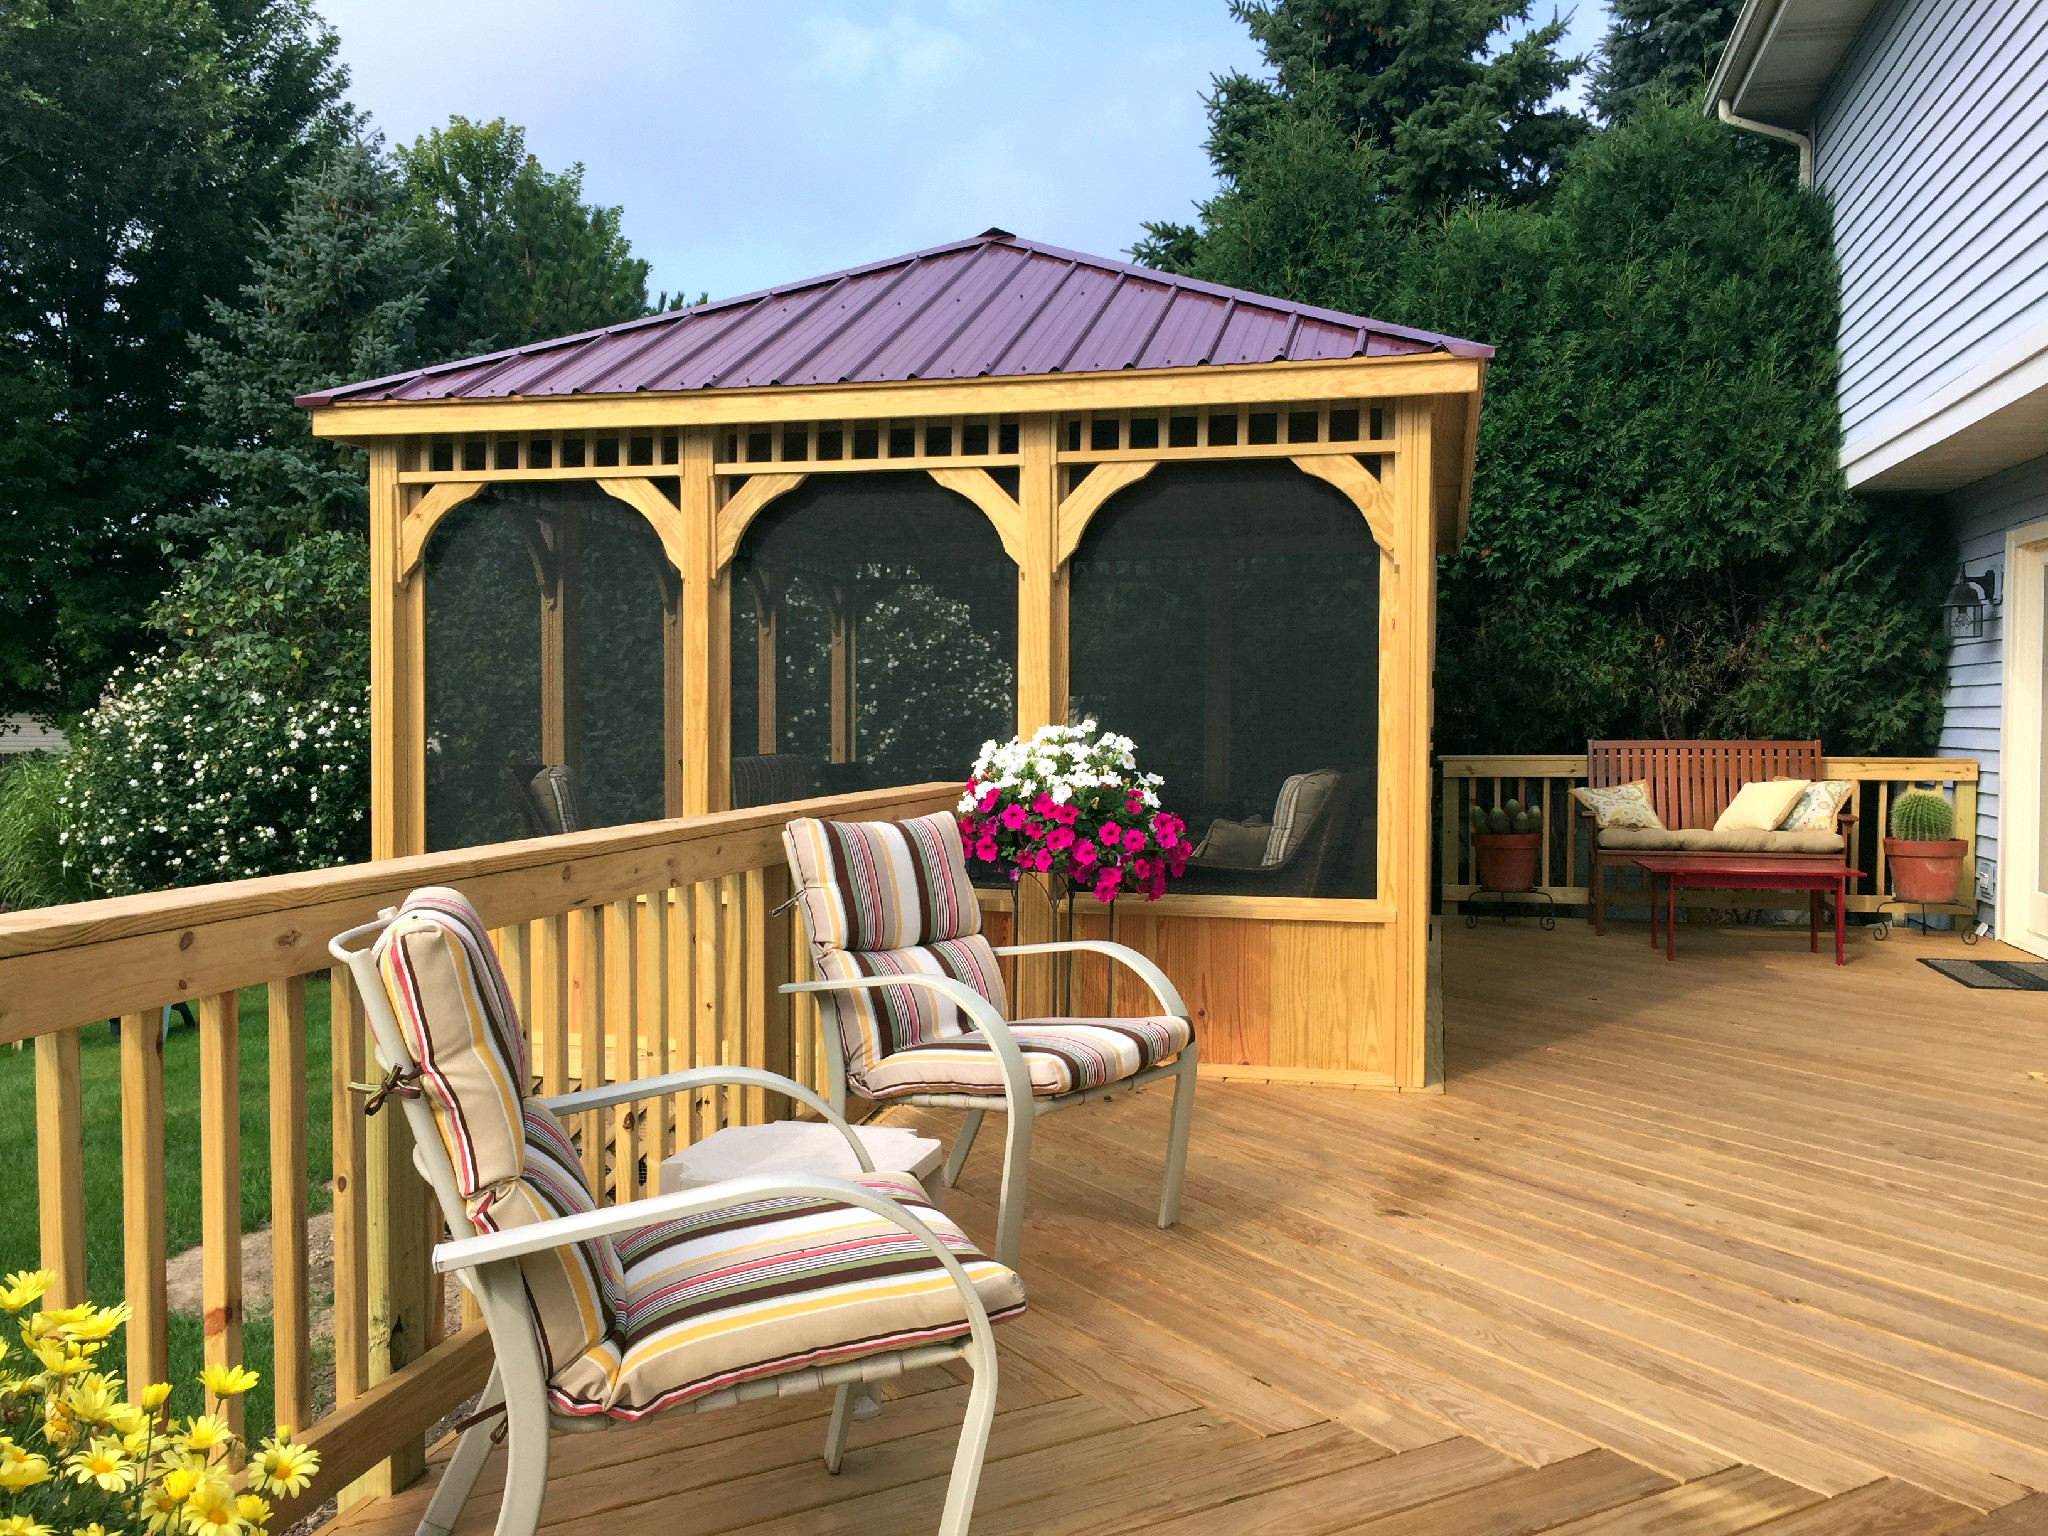 Gazebo design ideas by archadeck st louis decks for Deck with gazebo